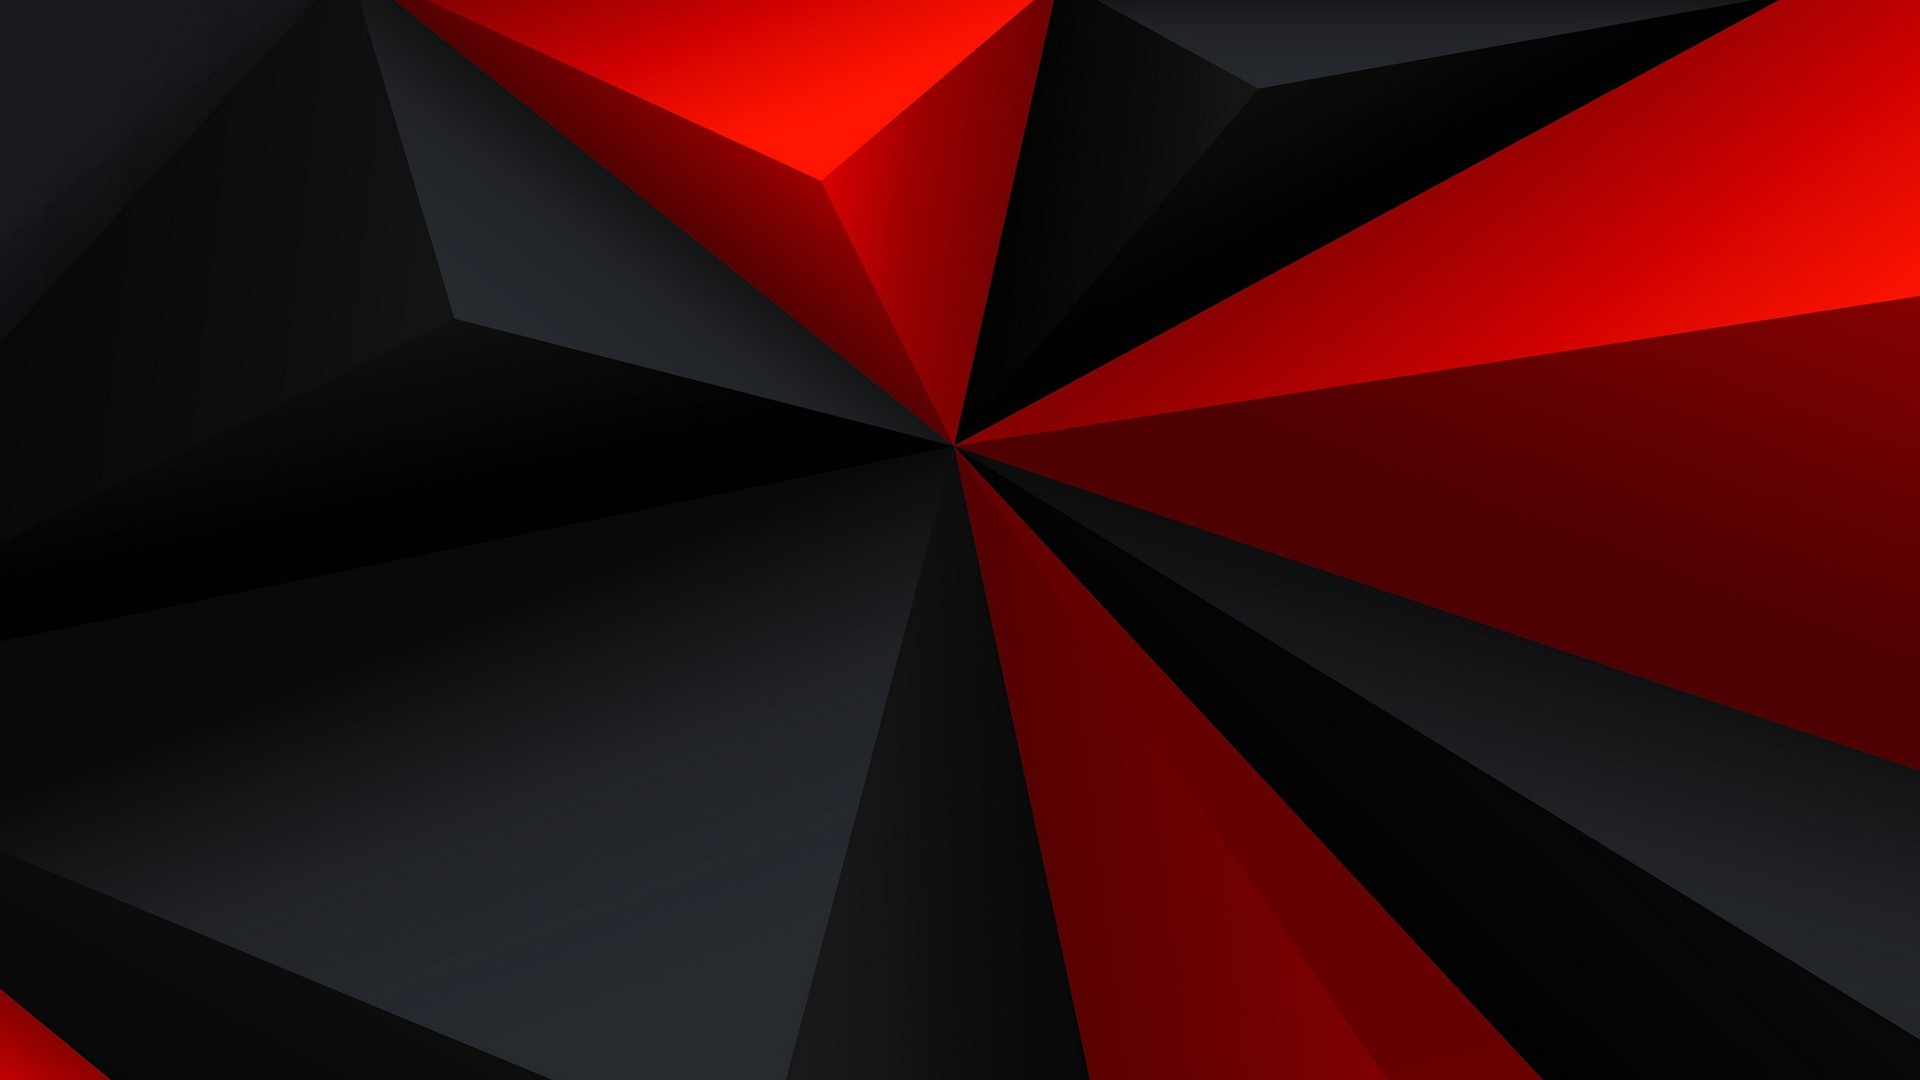 Black and red abstract wallpaper 56 images - Black abstract background ...